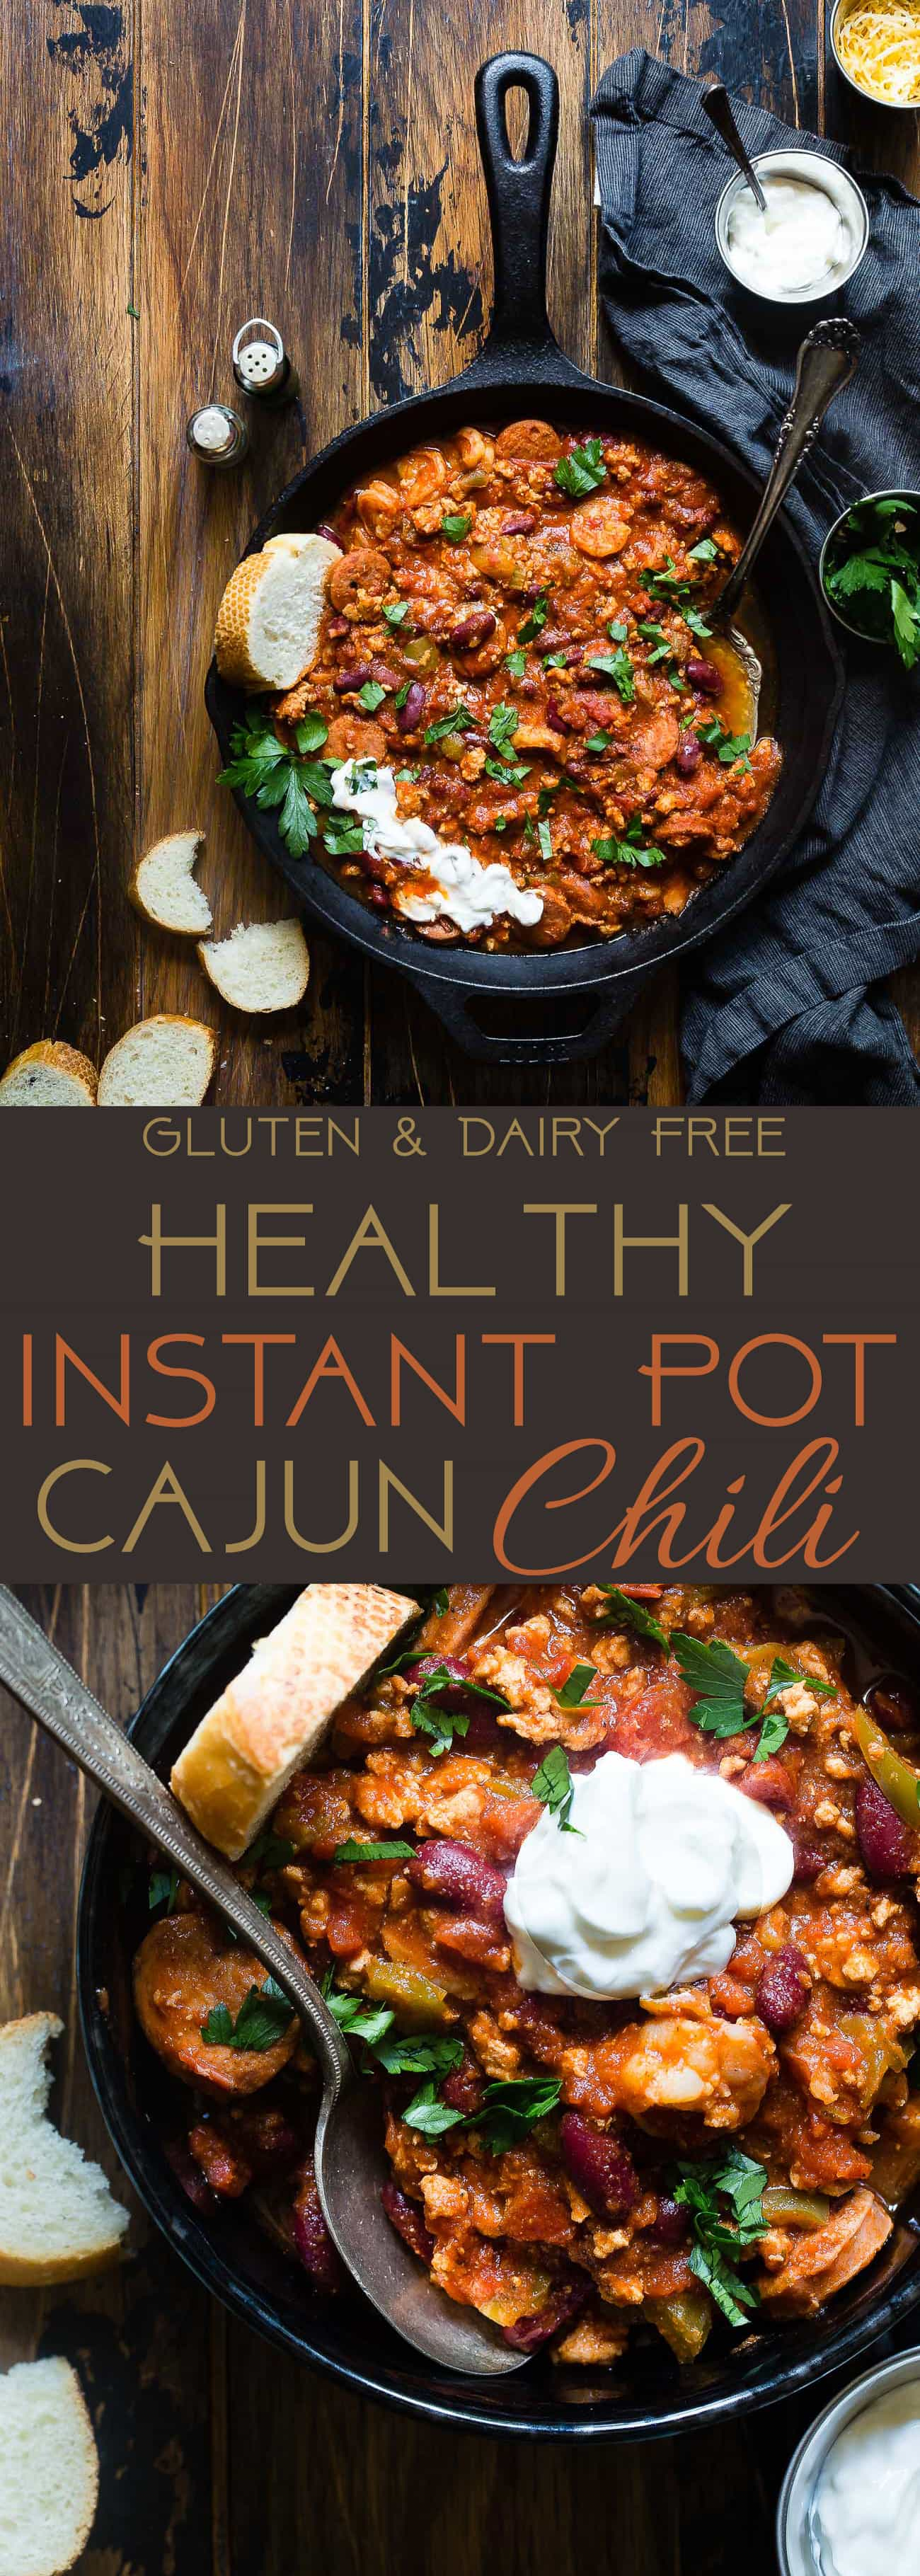 Instant Pot Cajun Chili -This quick and easy, healthy Instant Pot chili, with a little Cajun flair, is sure to become a family favorite! It's dairy/grain/gluten free, makes great leftovers and freezes great! Perfect for meal prep! | Foodfaithfitness.com | @FoodFaithFit | Easy chili recipes. gluten free chili. slow cooker chili. crock pot chili. slow cooker chili recipe. quick and easy chili. healthy chili recipes.